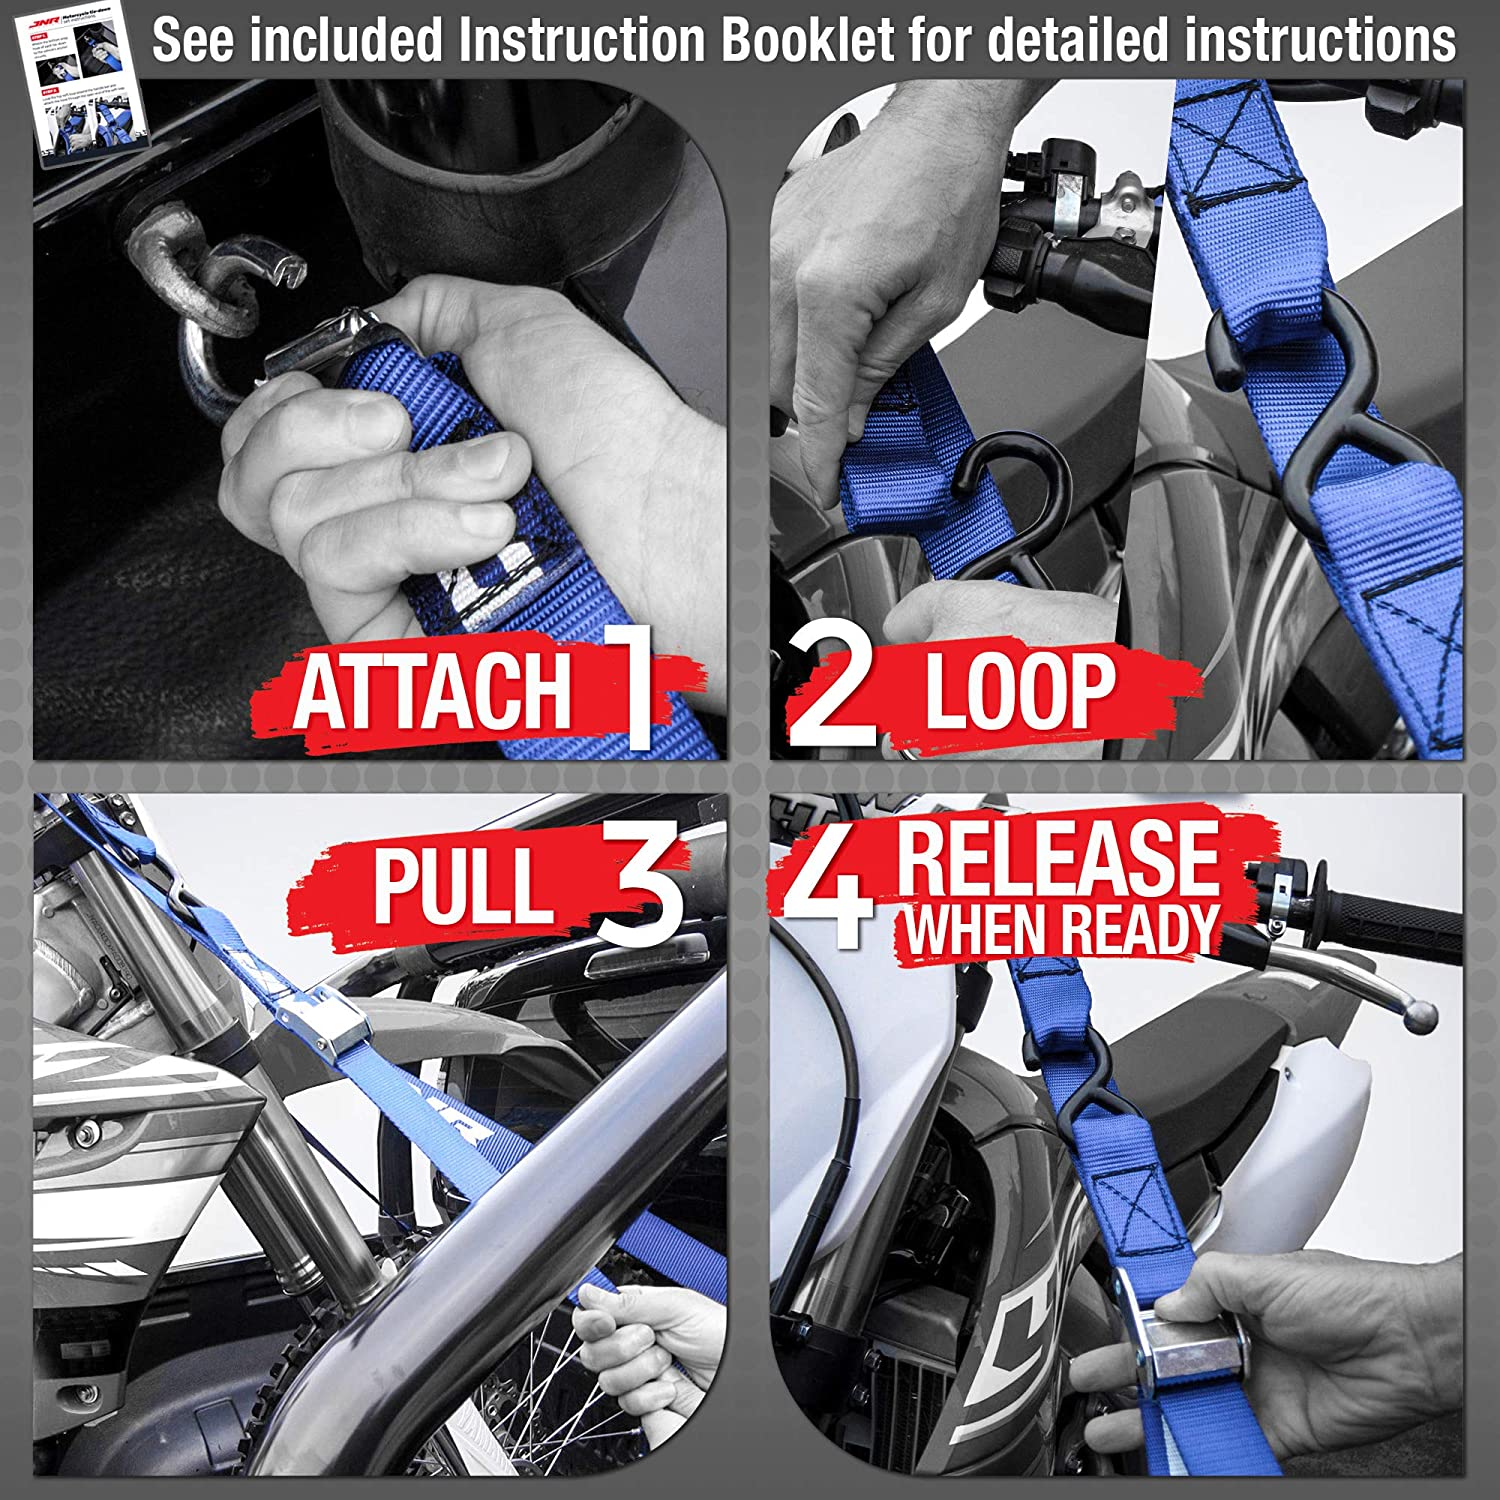 JNR Moto Sports Motorcycle Tie Downs Cam Buckle Motorcycle Straps Easier Than Retractable Ratchet Strap Set ATV UTV tie Down Straps Tie Down Strap Ratchet Straps Motorcycle Tie Down Straps Heavy Duty